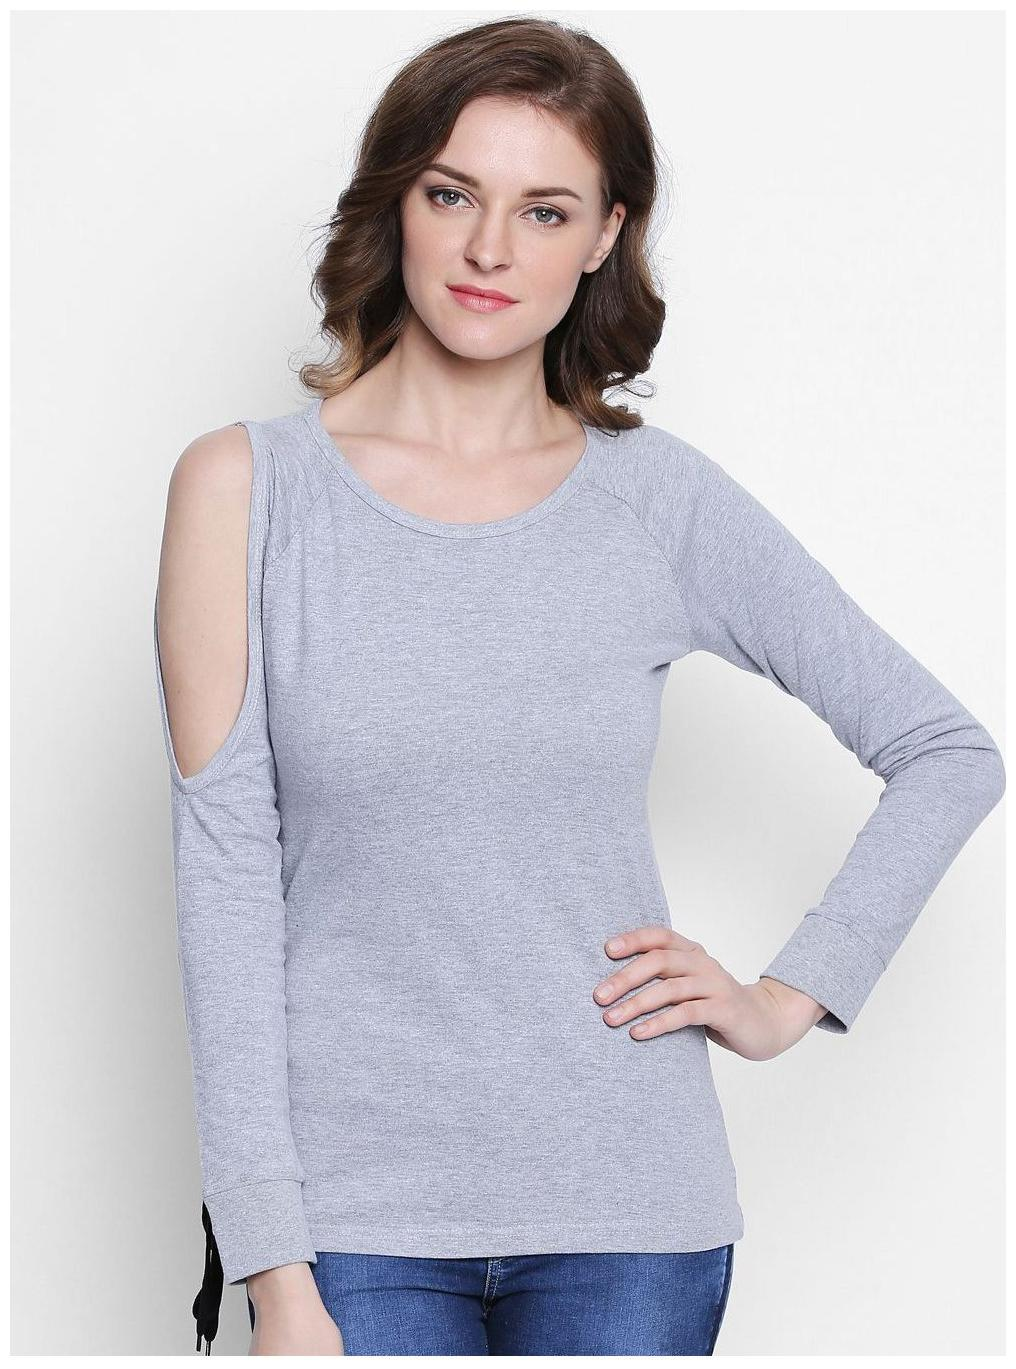 The Dry State Round Neck Full Sleeves Solid Women's Top